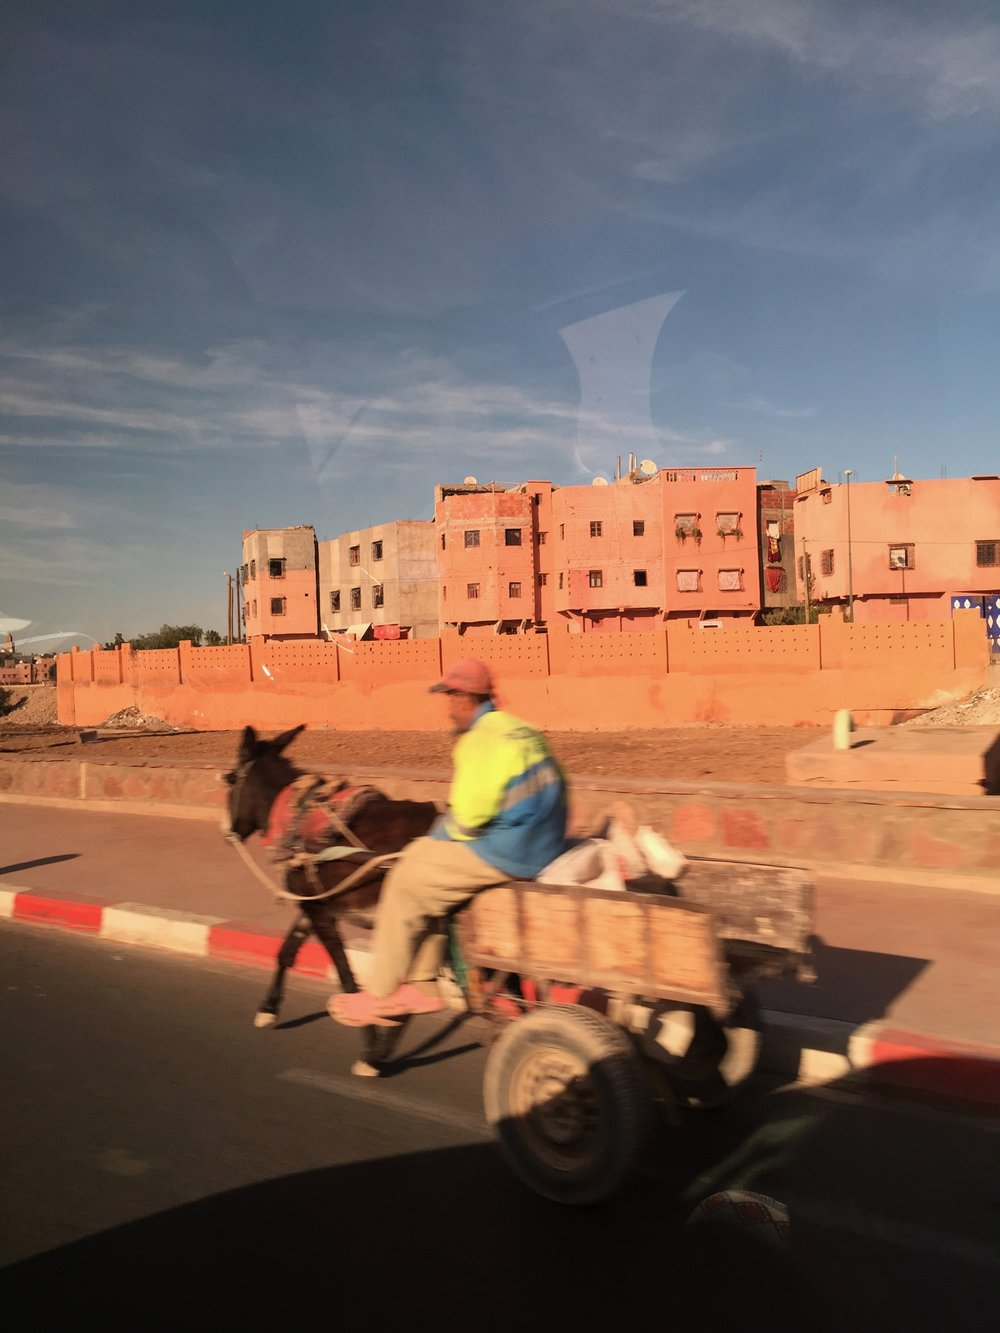 Dodging the traffic in Marrakech